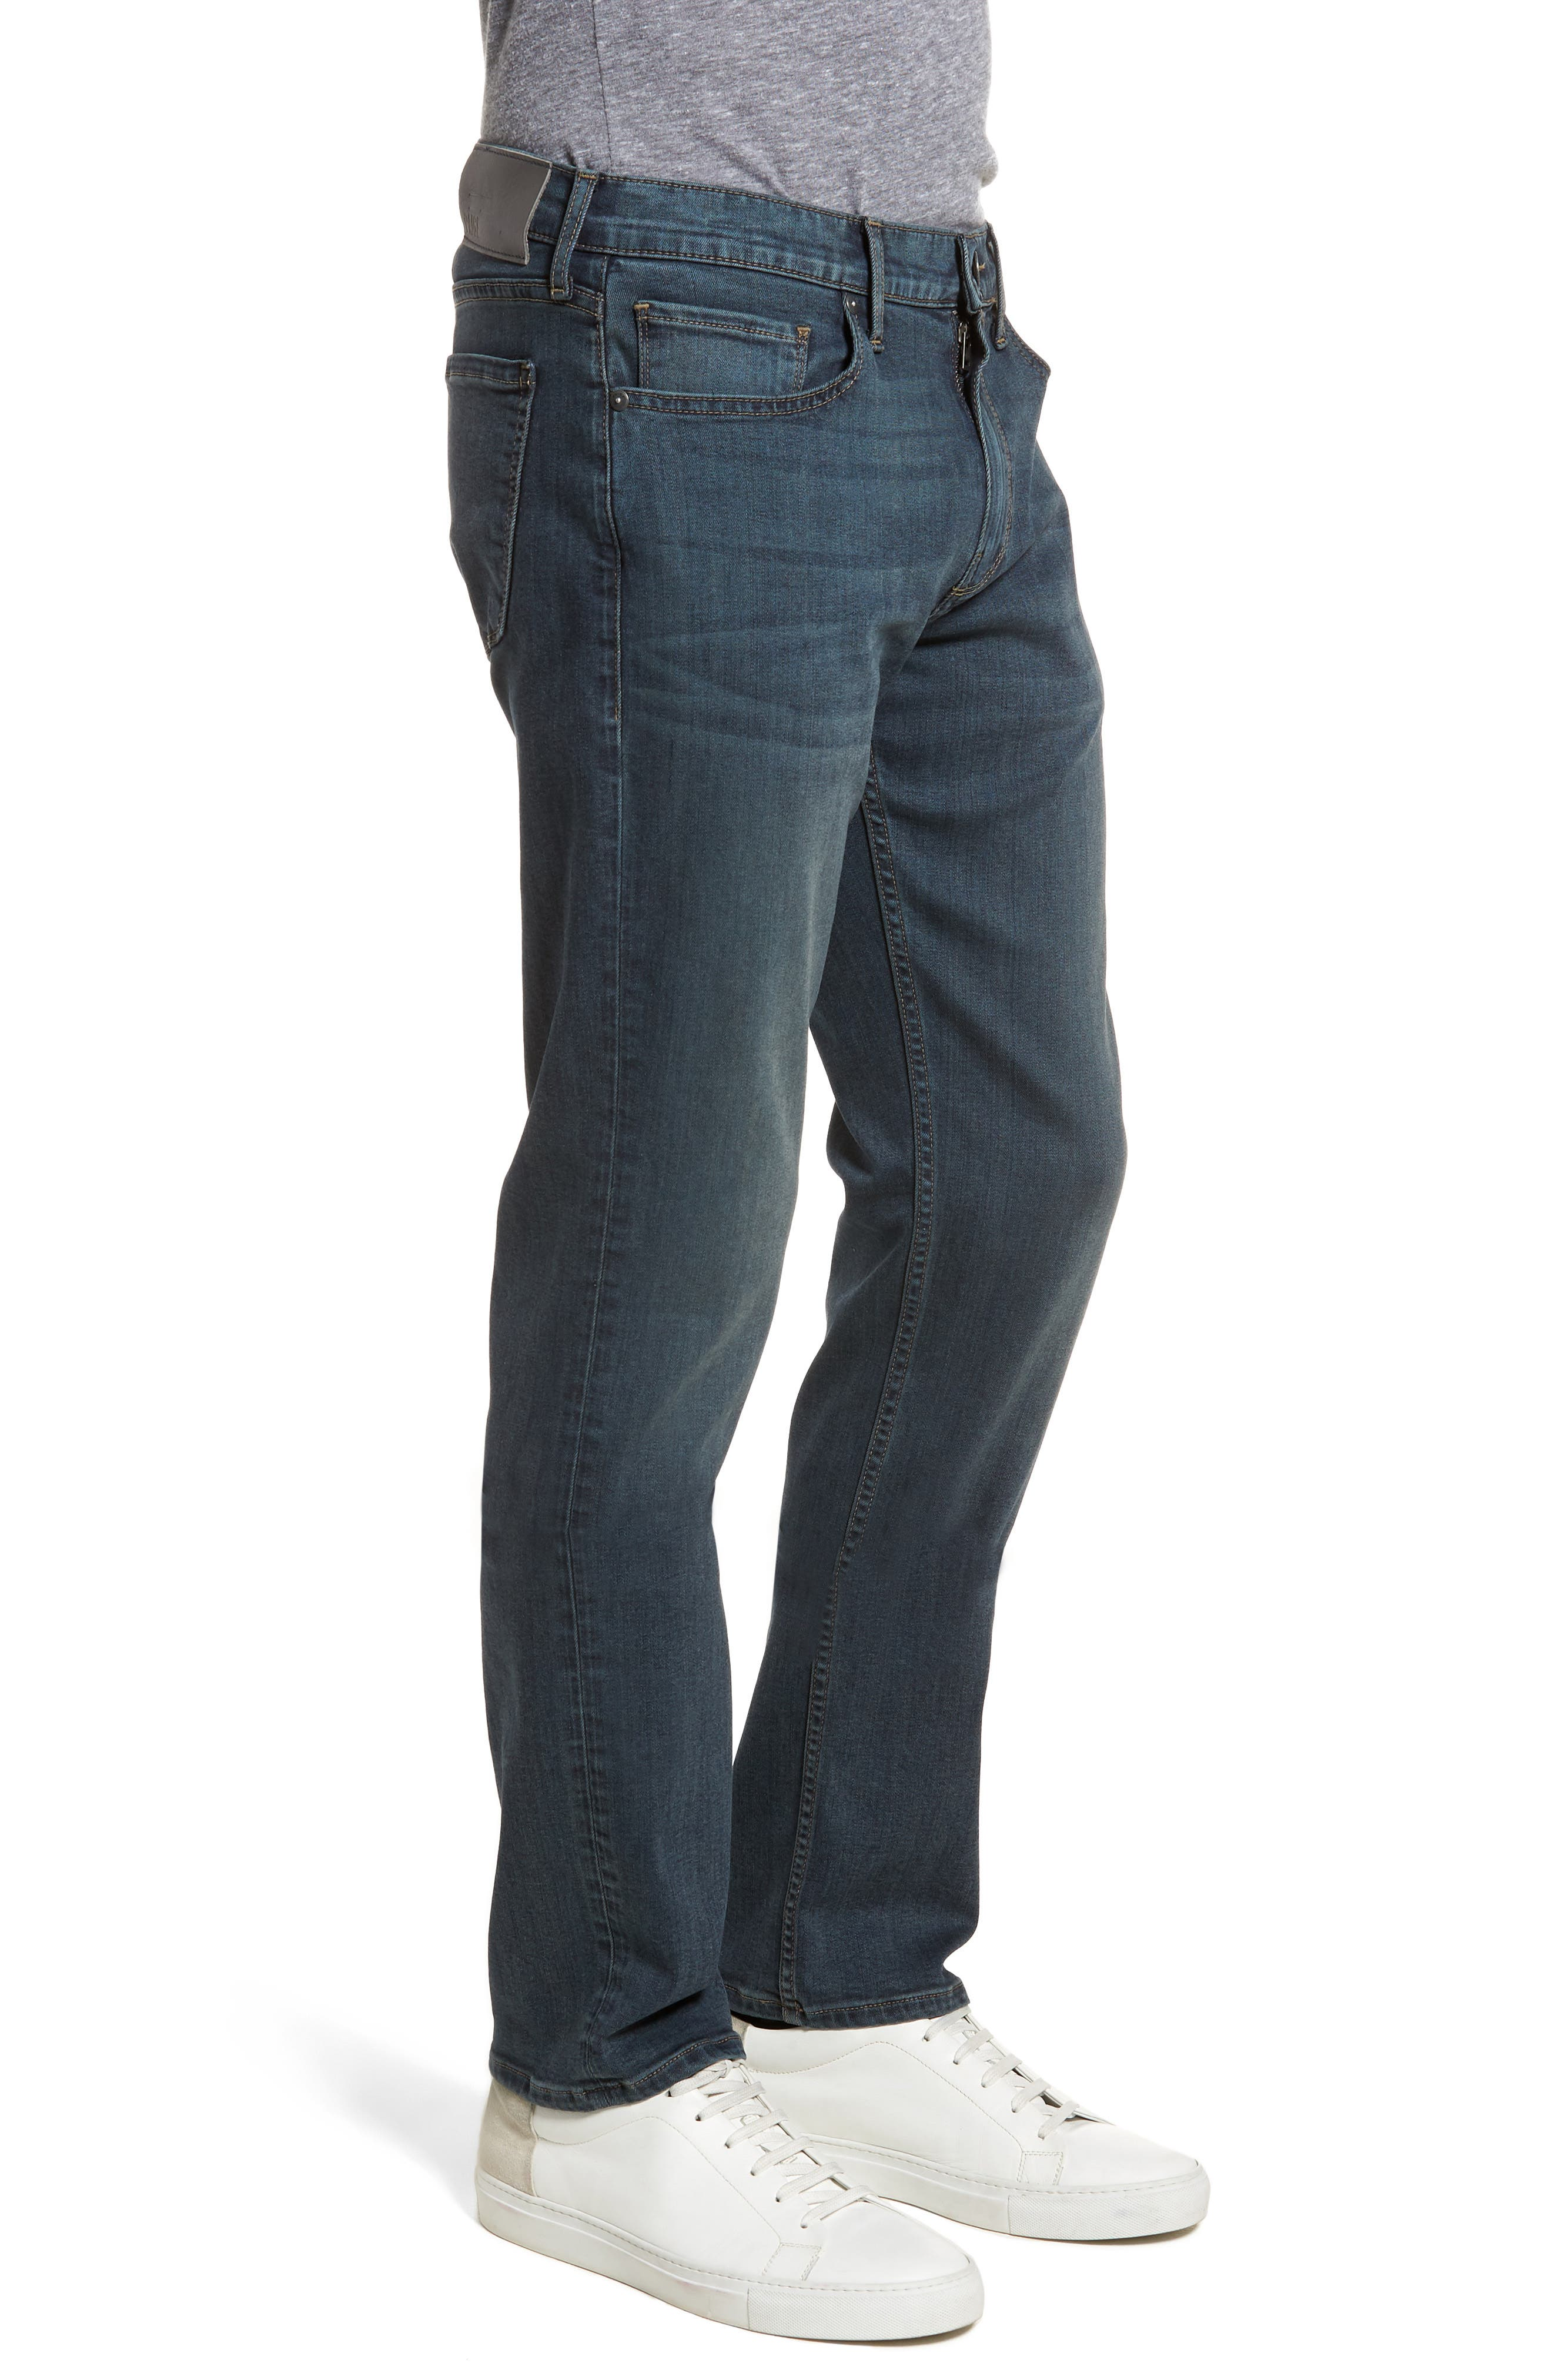 Byron Slim Straight Fit Jeans,                             Alternate thumbnail 3, color,                             424